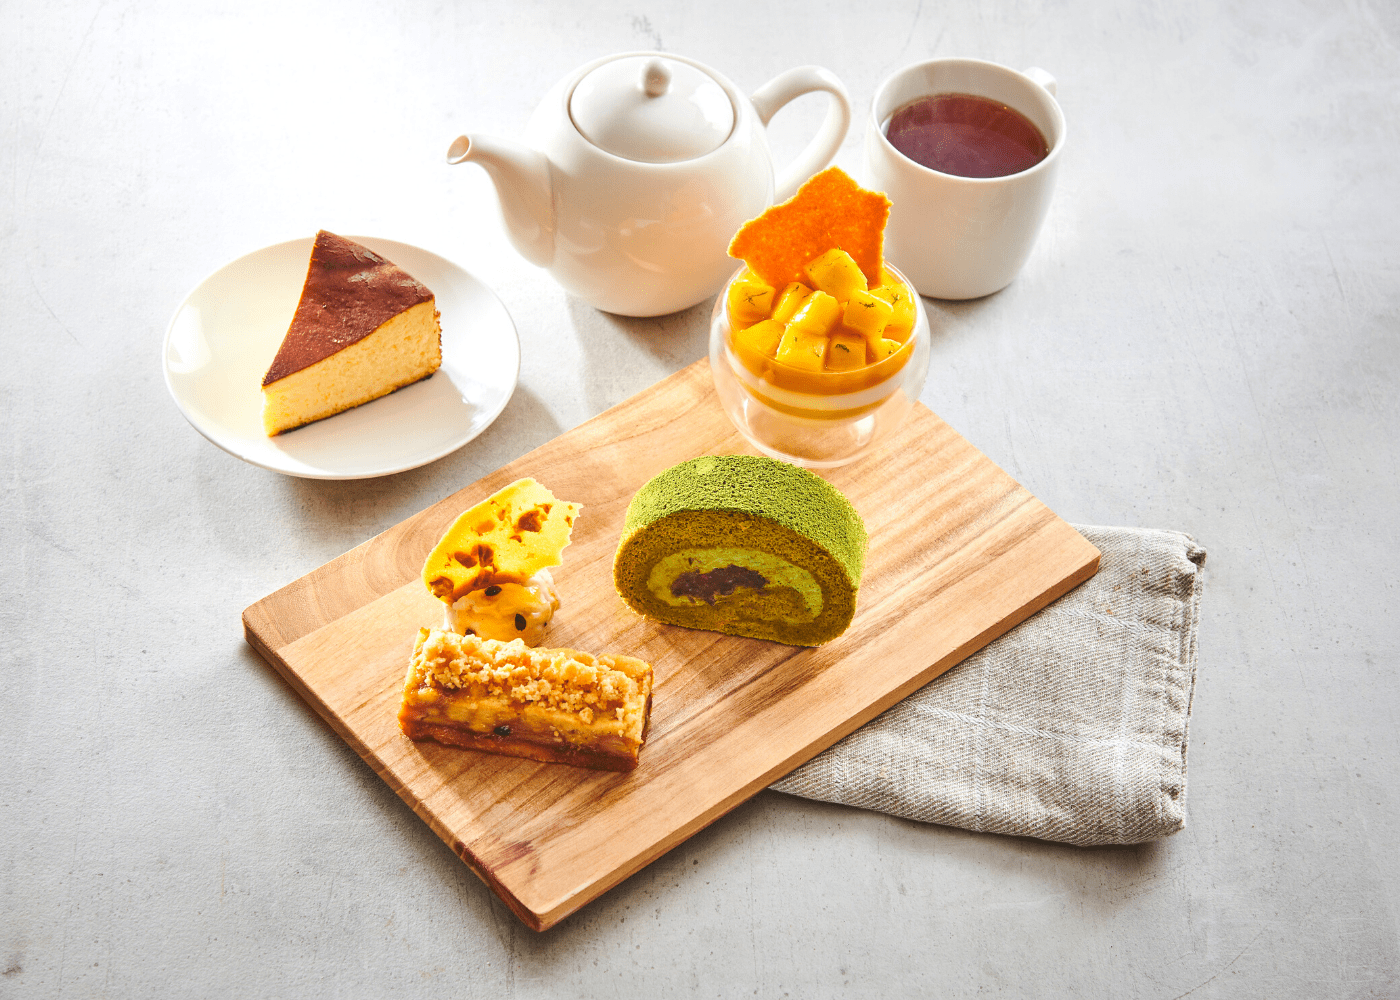 Hit up these cafes for the best tropical desserts in Singapore